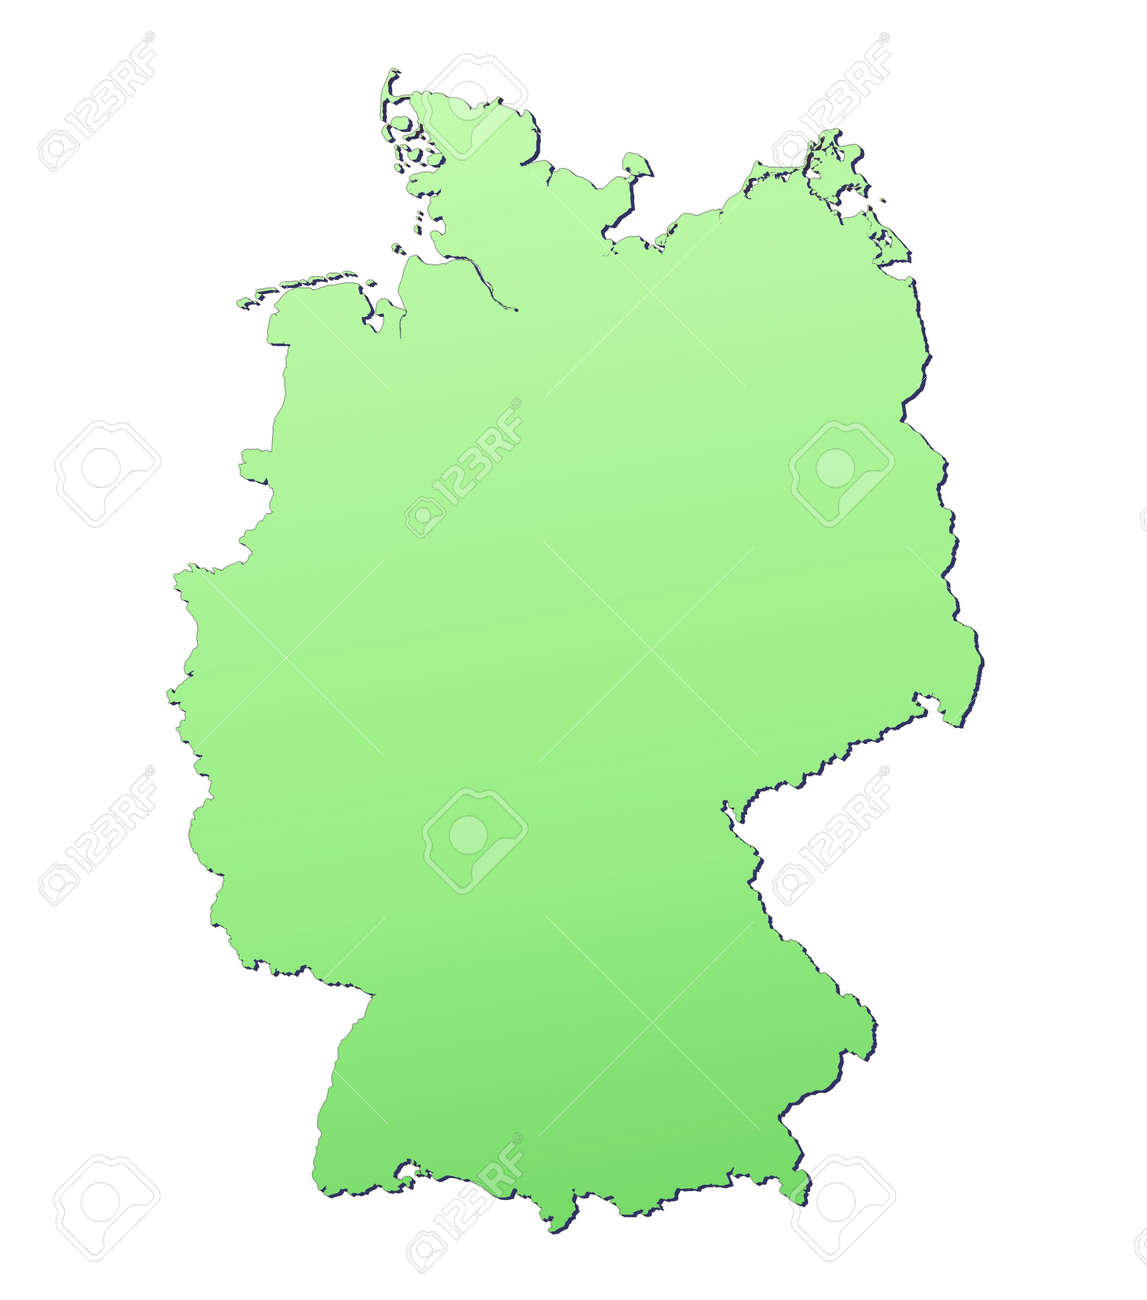 Germany Map Filled With Light Green Gradient High Resolution - Germany map high resolution